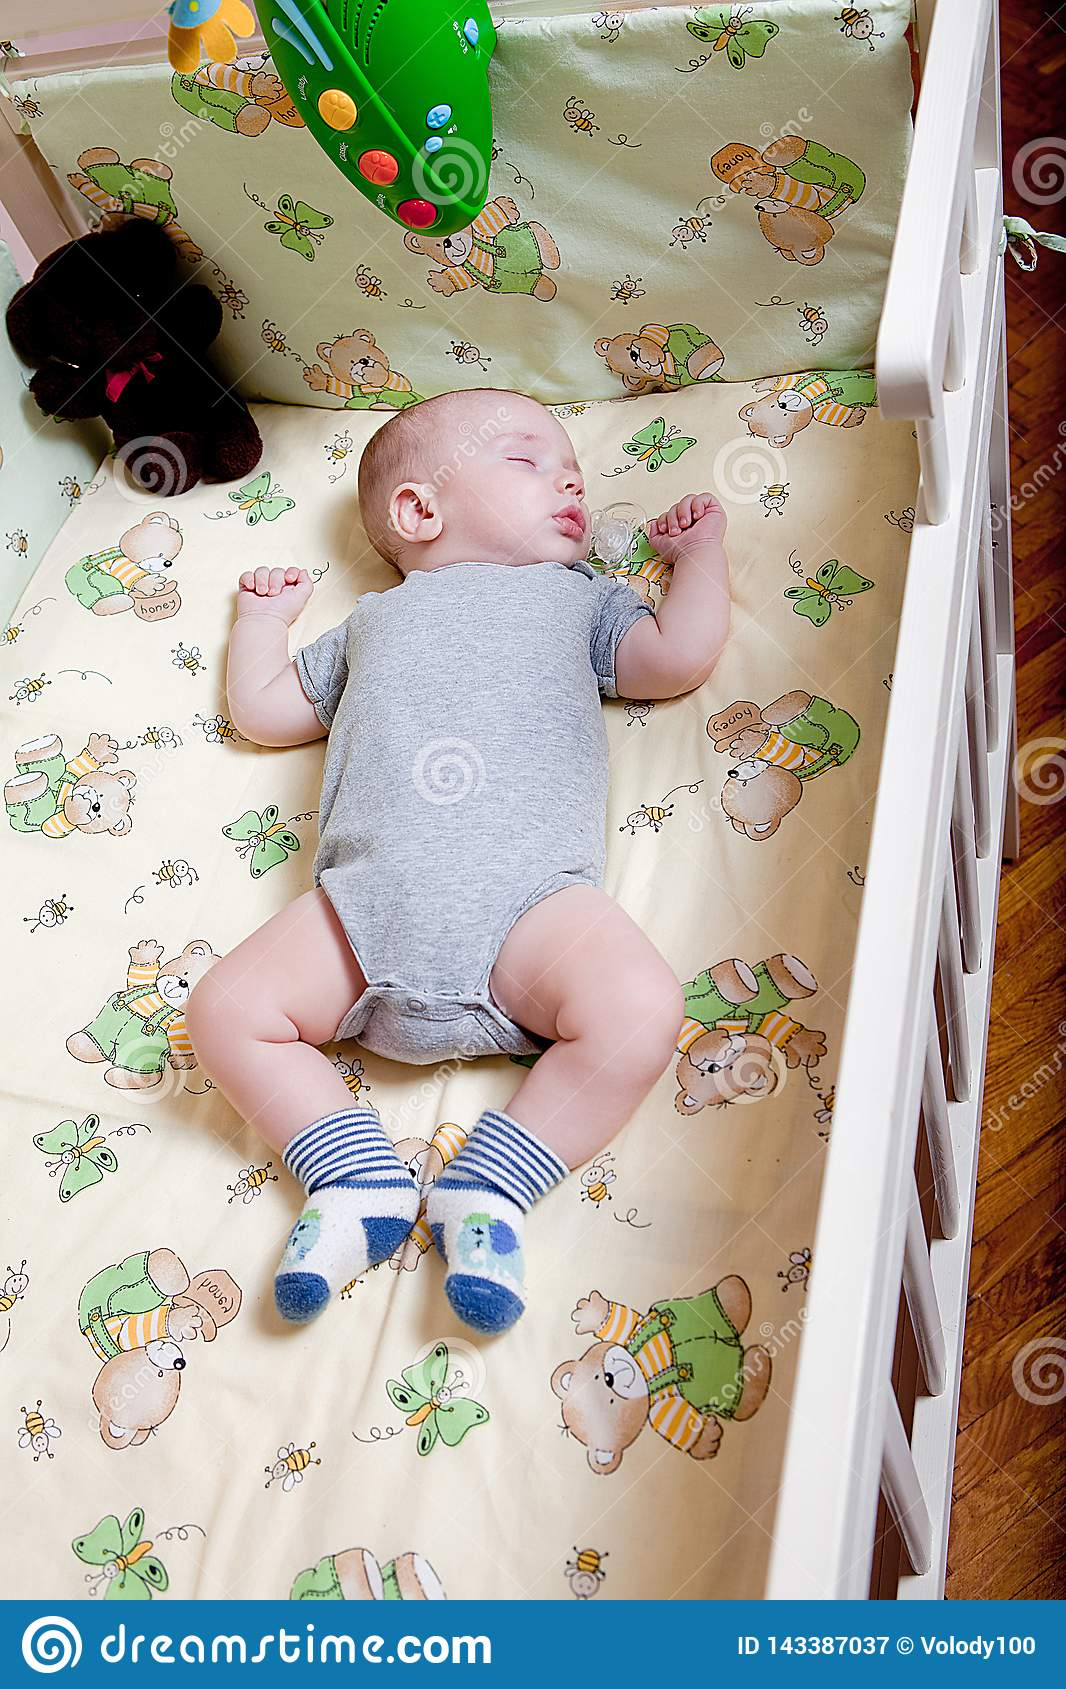 Baby`s restful sleep. Newborn baby in a wooden crib. The baby sleeps in the bedside cradle. Safe living together in a bedside cot